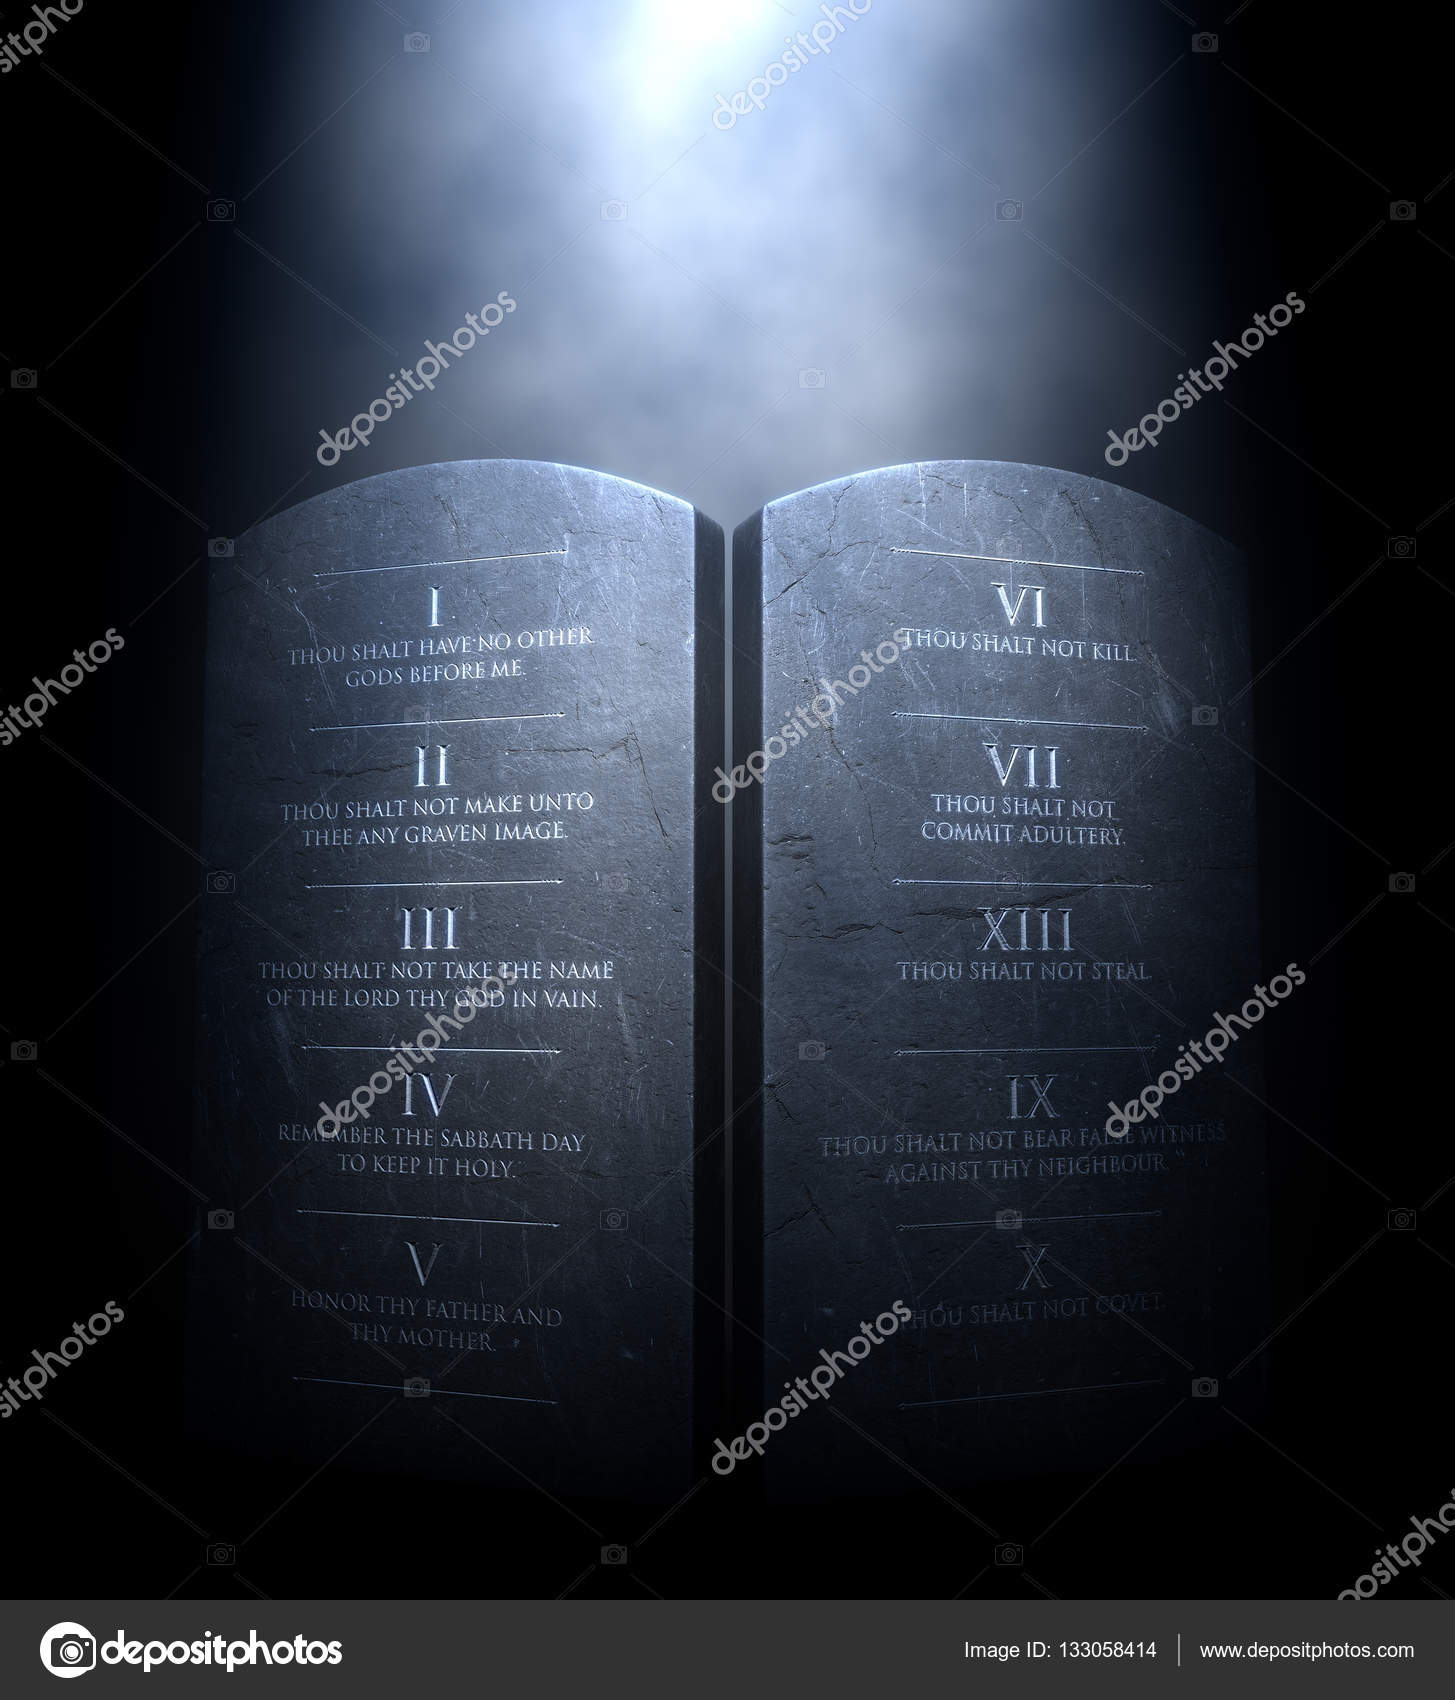 A 3D Render Of Two Stone Tablets With The Ten Commandments Etched On Them Lit By Dramatic Spotlight Dark Background Photo Albund